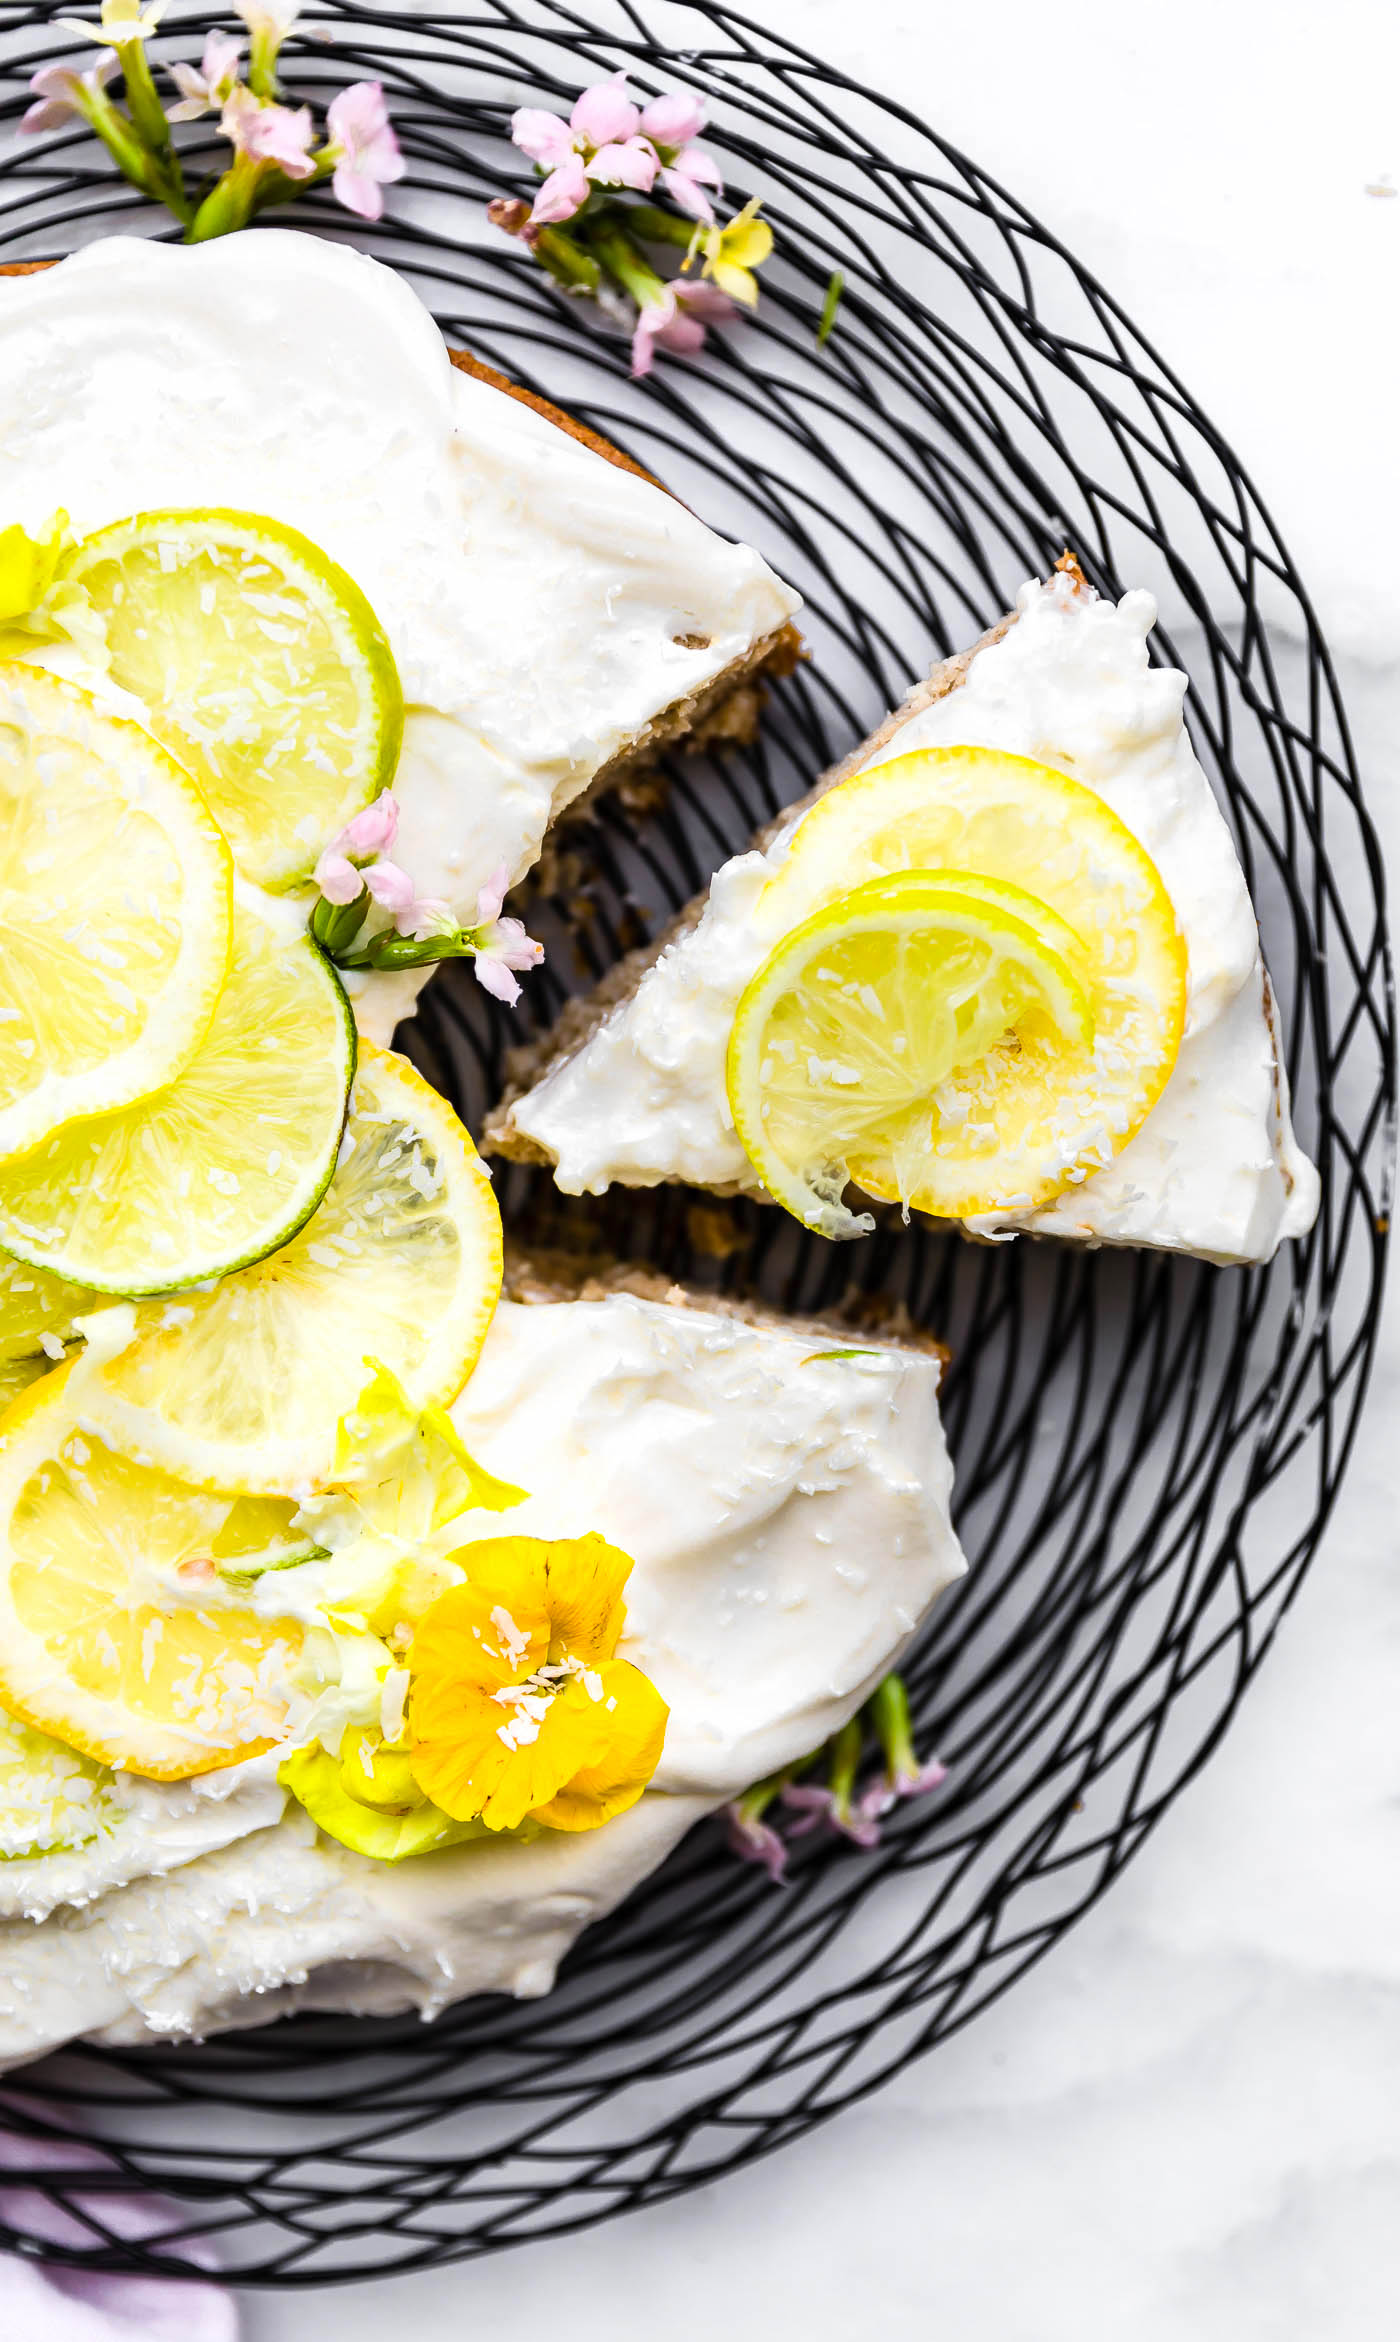 Super EASY gluten free lemon lime coconut vegan cake topped with fluffy whipped coconut cream frosting. An allergy friendly vegan cake that's perfect for Any season. So simple to make! All you need are a few REAL FOOD ingredients and 45 minutes to bake.